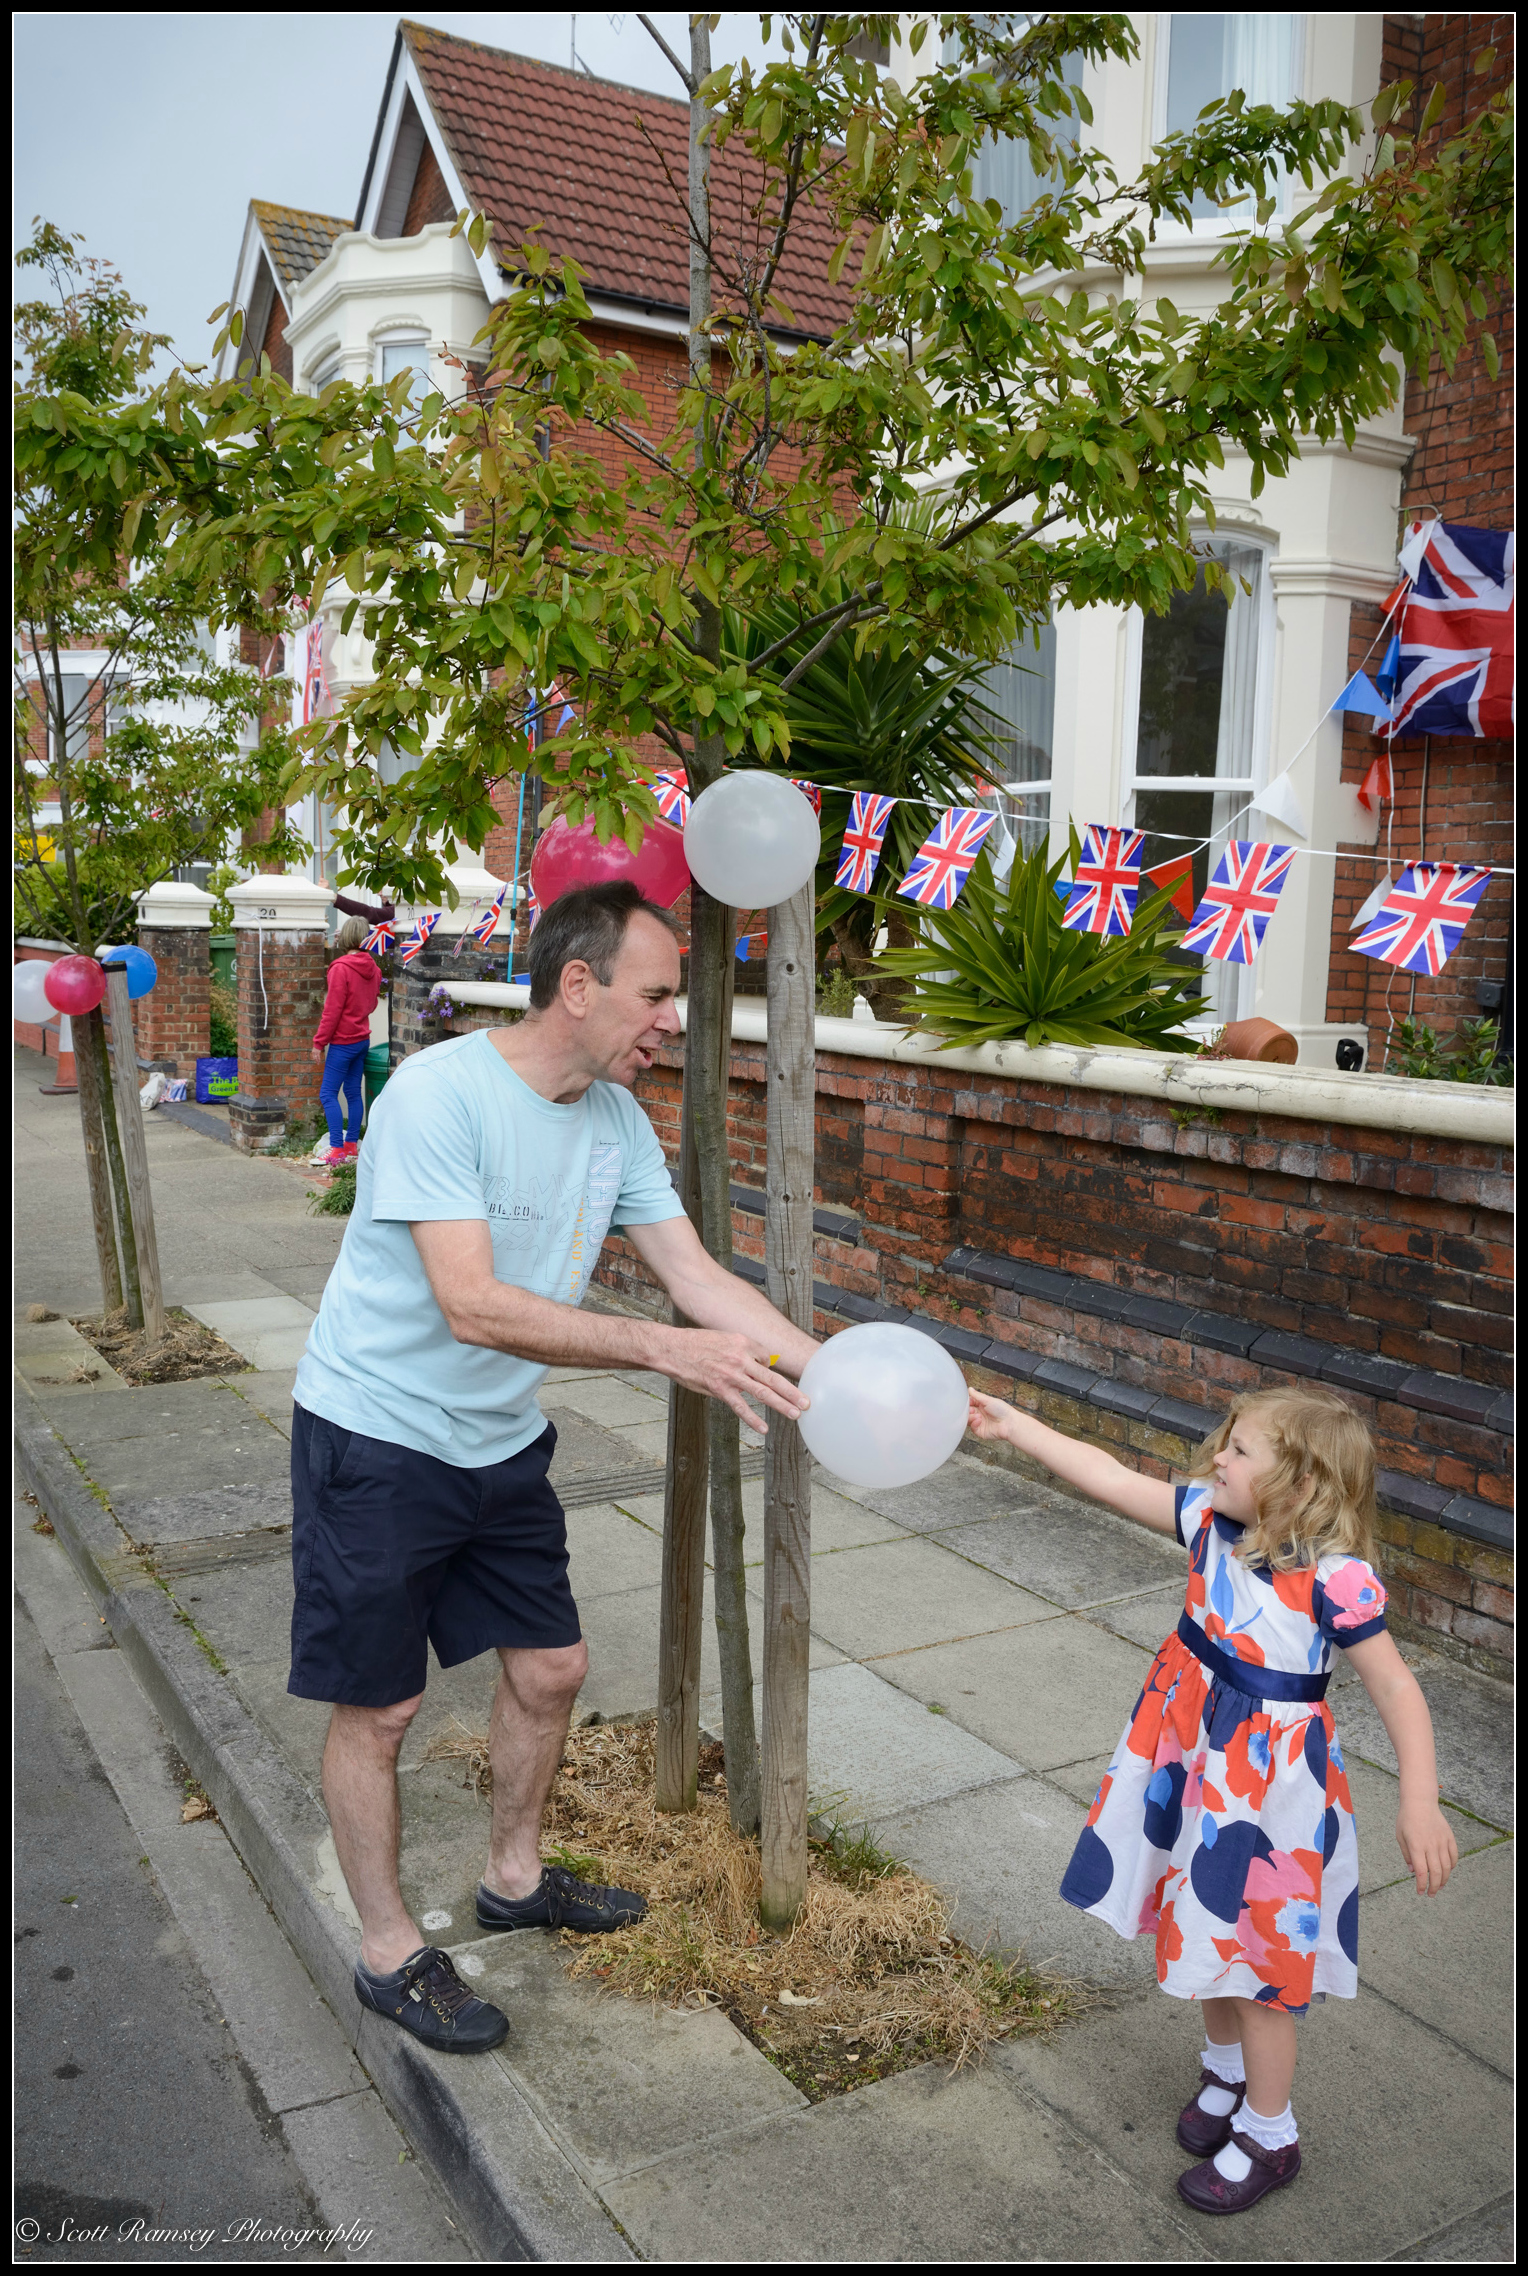 A resident of Nettlecombe Avenue, Southseais handed a balloon from a young girlduring preparations forVE Day 70th anniversary street party. © Scott Ramsey Photography.